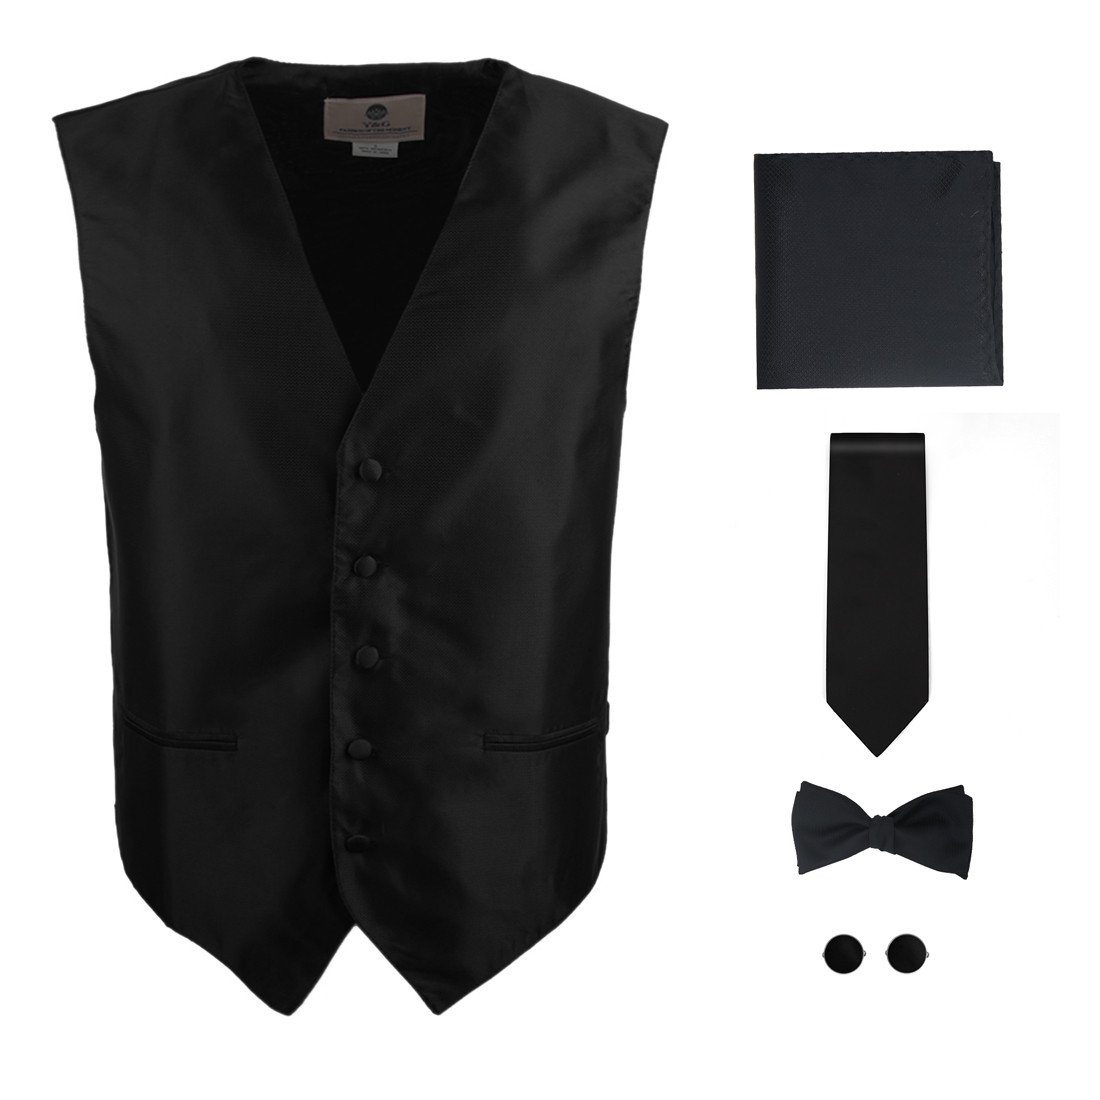 Solid Black Formal Vest for Men Patterned for Mens Gift Idea with Neck Tie, Cufflinks, Handkerchief, Bow Tie for Suit Vs1003 (3xl) by Y&G (Image #3)